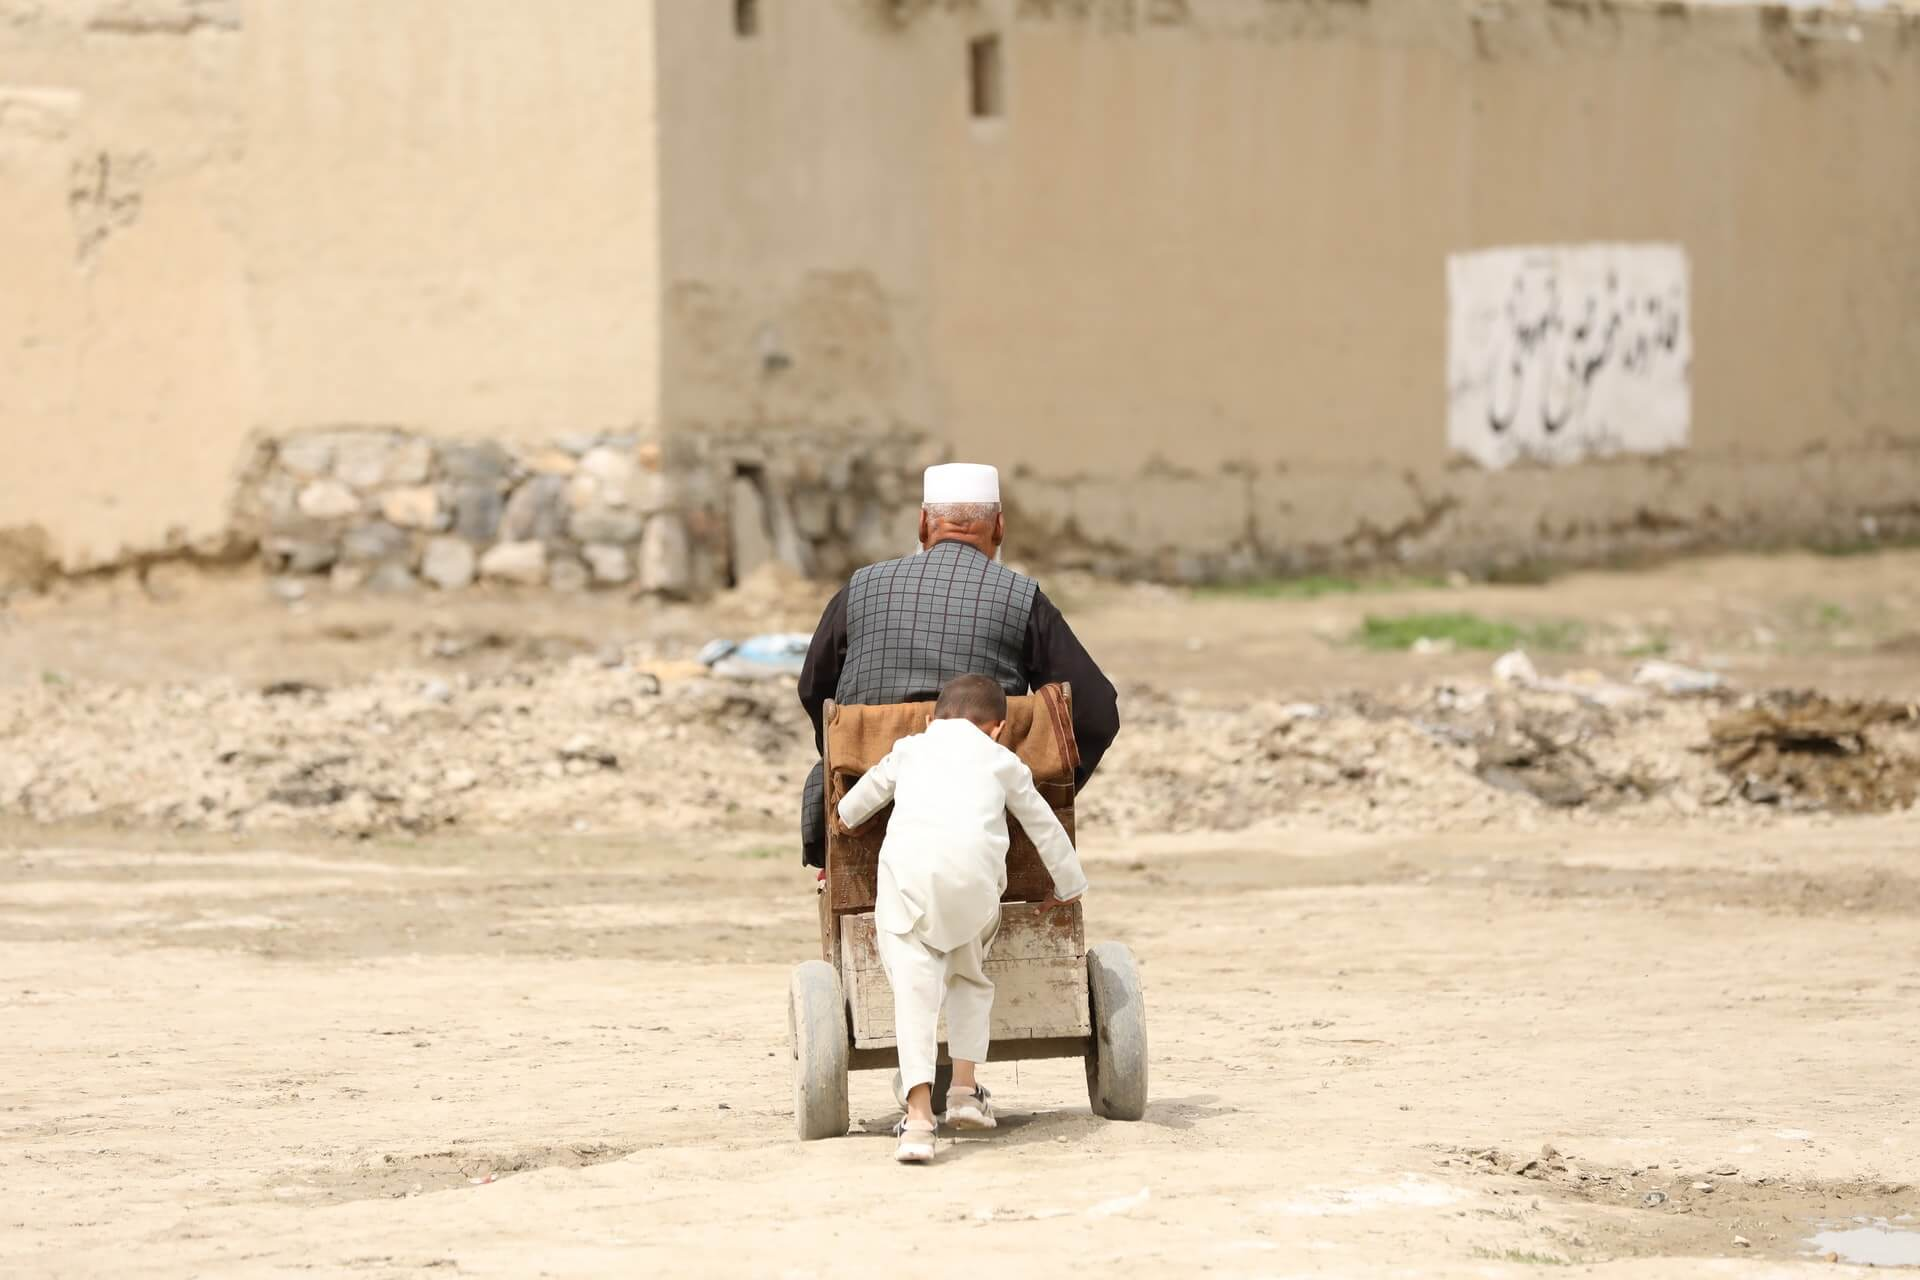 A small Afghan boy pushes his grandfather down a dusty road in a cart.